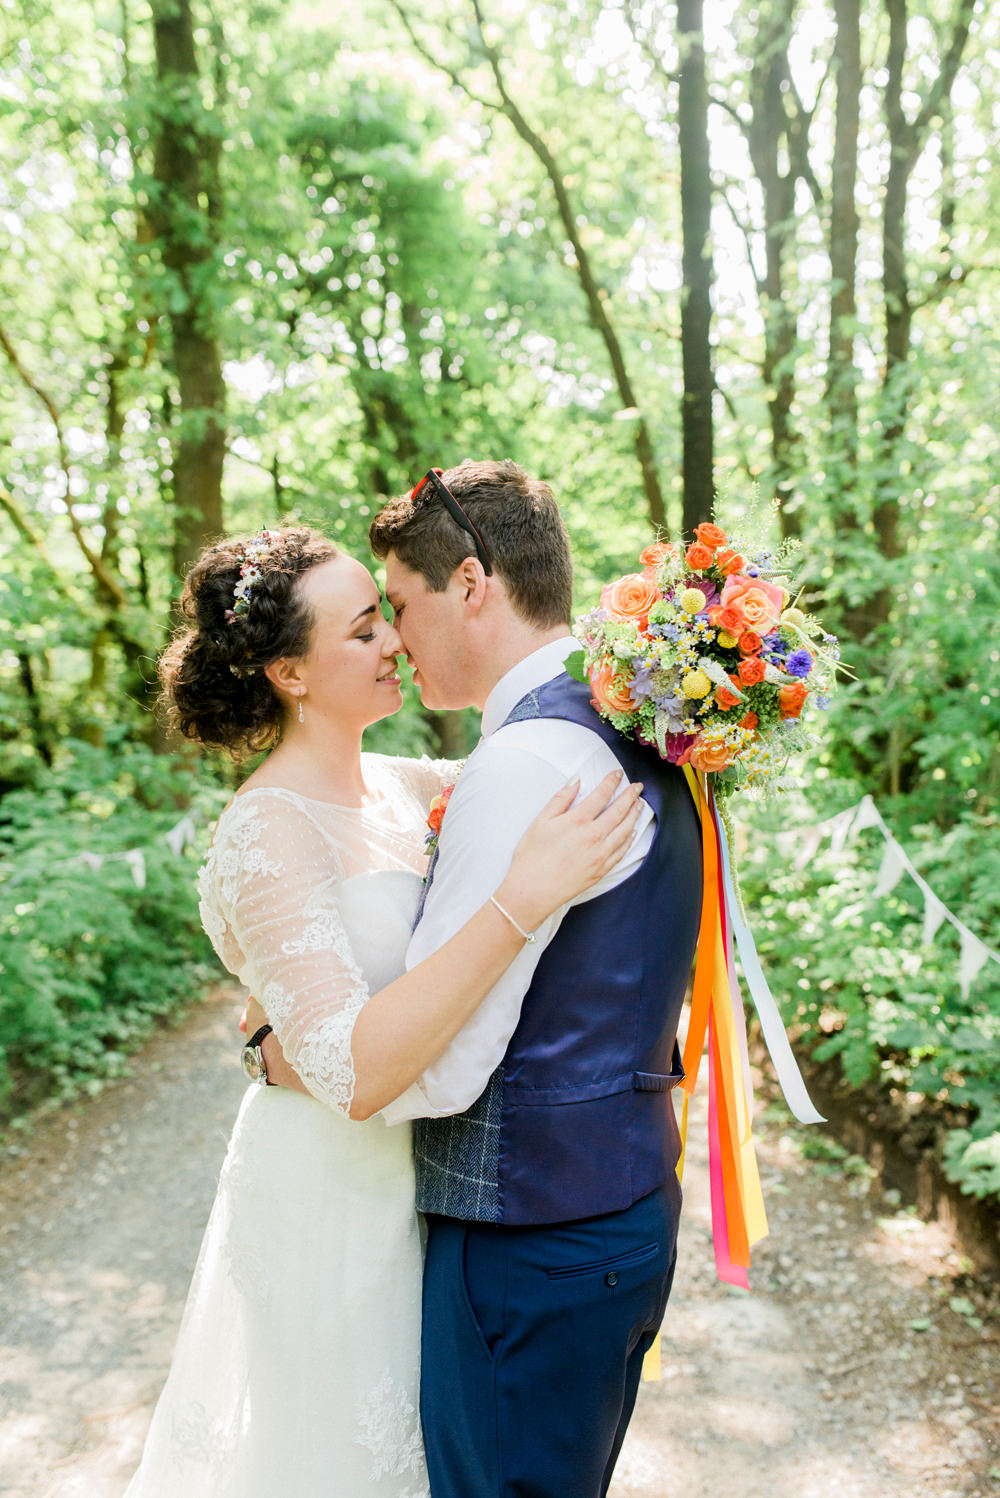 Bride Bridal Strapless Sweetheart Neckline Lace Jacket Sleeves Waistcoat Groom Blue Multicoloured Bouquet Ribbon Spring Cottage Rivington Wedding Emma B Photography